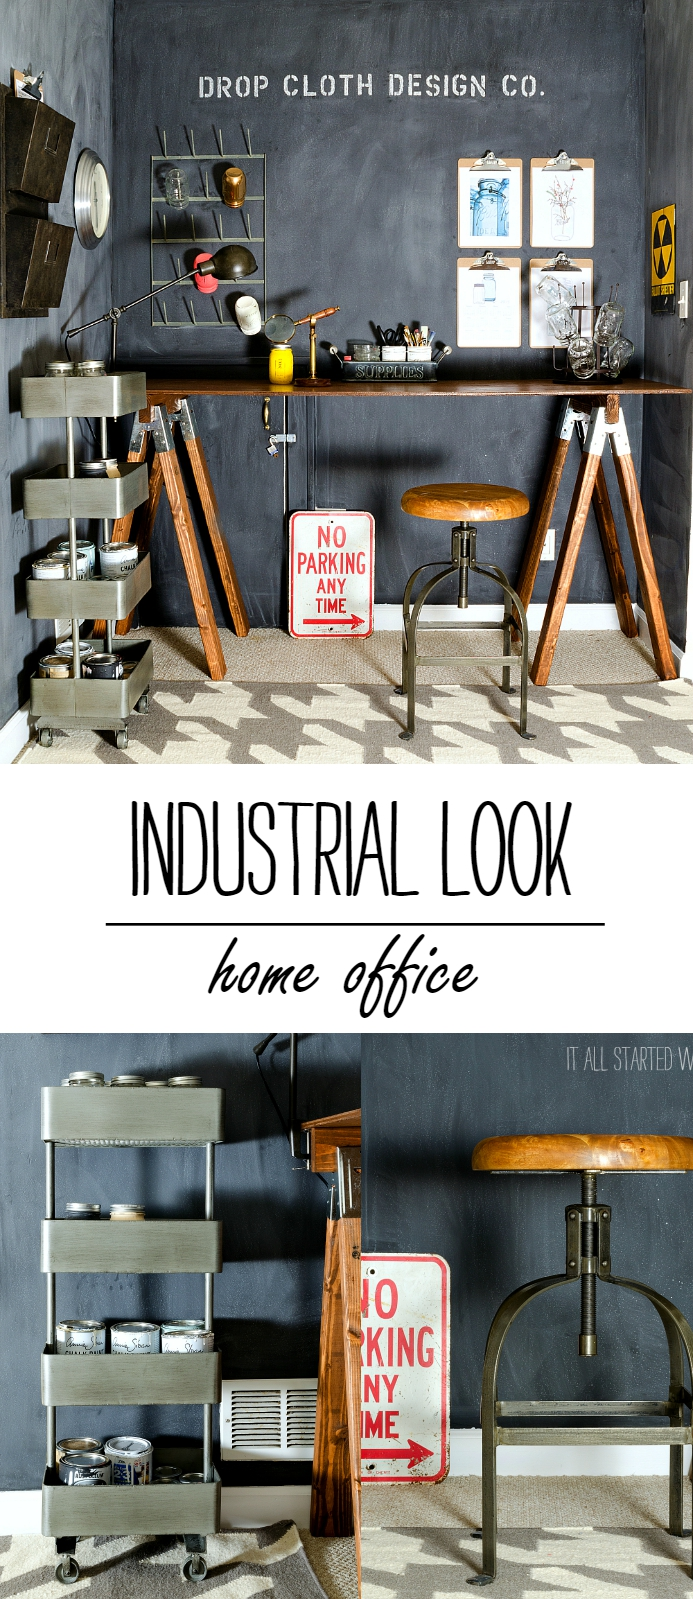 Home Office: Industrial Look With Chalkboard Wall and Sawhorse Desk